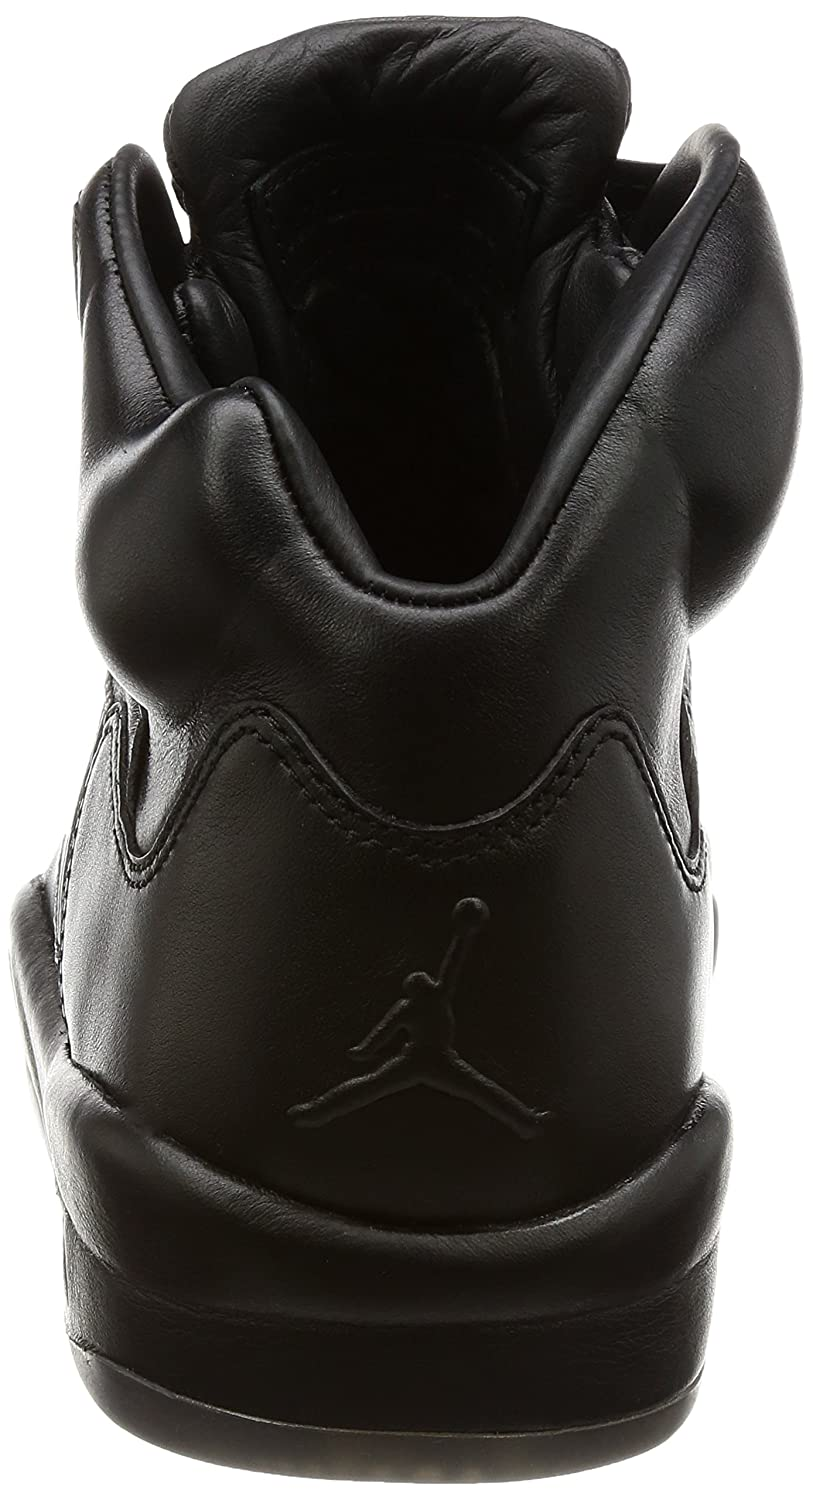 Jordan Men's Air 5 Retro PREM, BLACK, 7.5 M US: Amazon.co.uk: Shoes & Bags